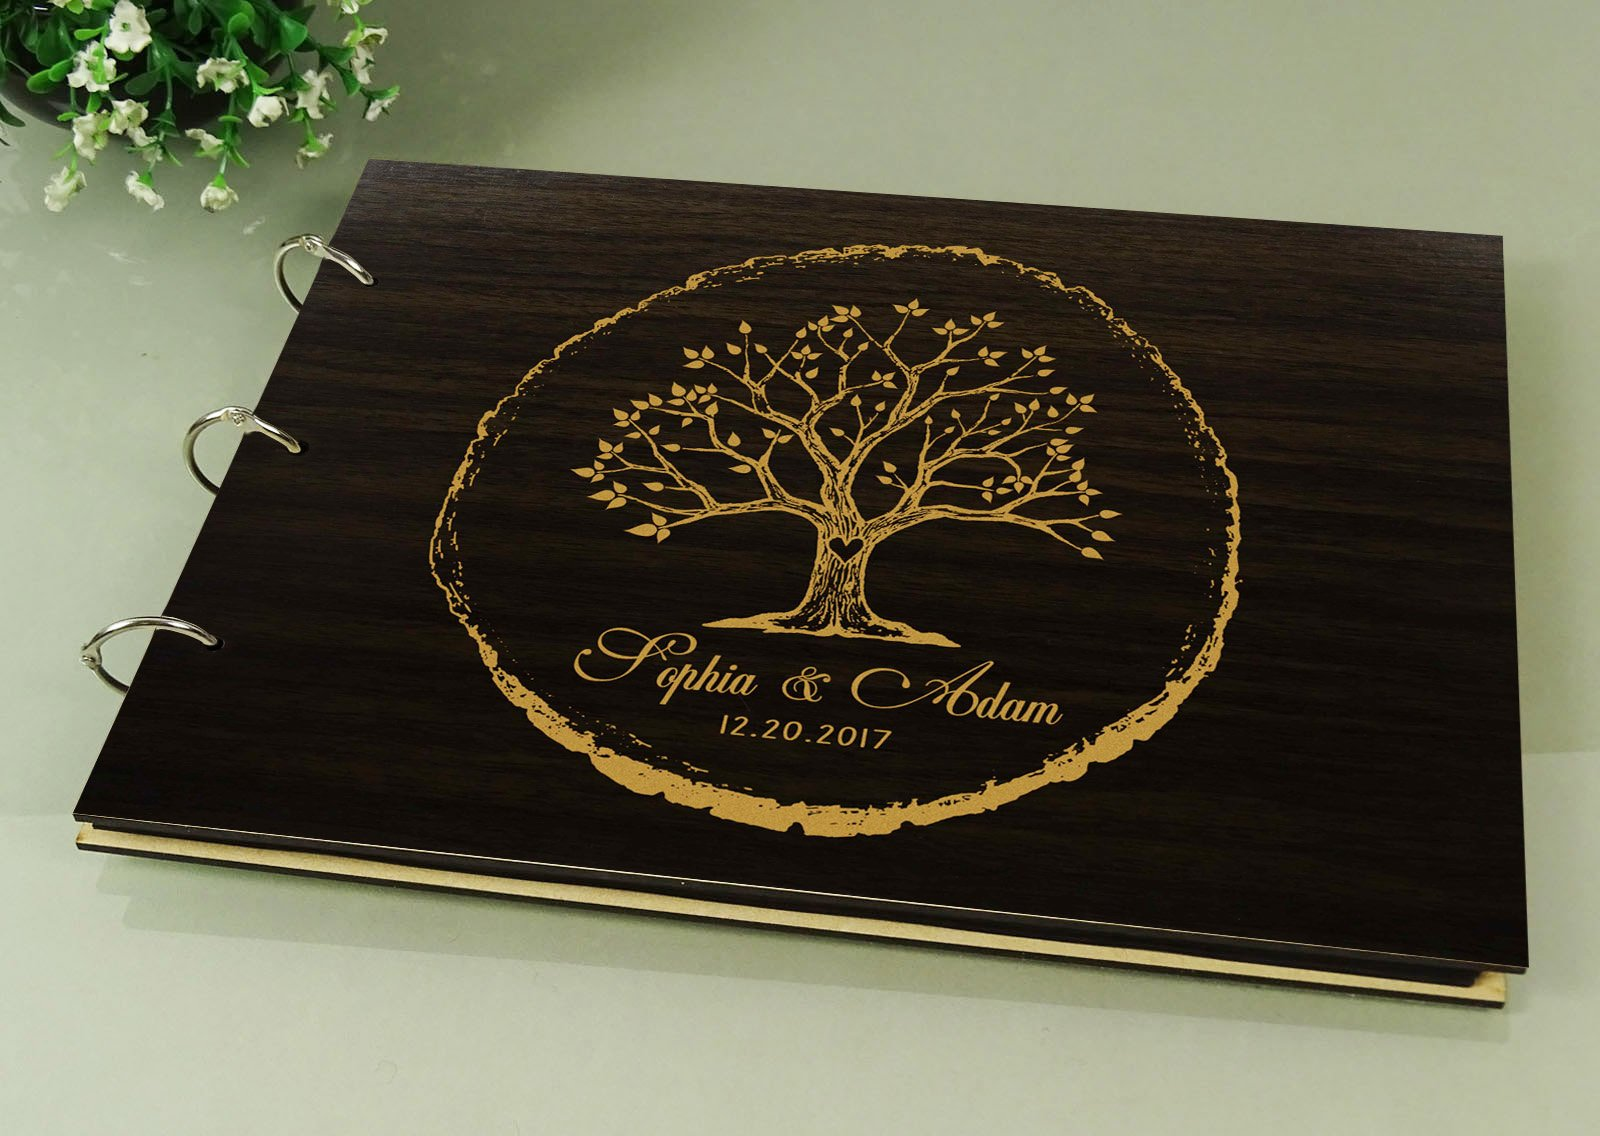 Handmade Tree Design Personalised Wooden Guest Book Rustic Wedding Wood Engraved Scrapbook by Darling Souvenir (Image #4)